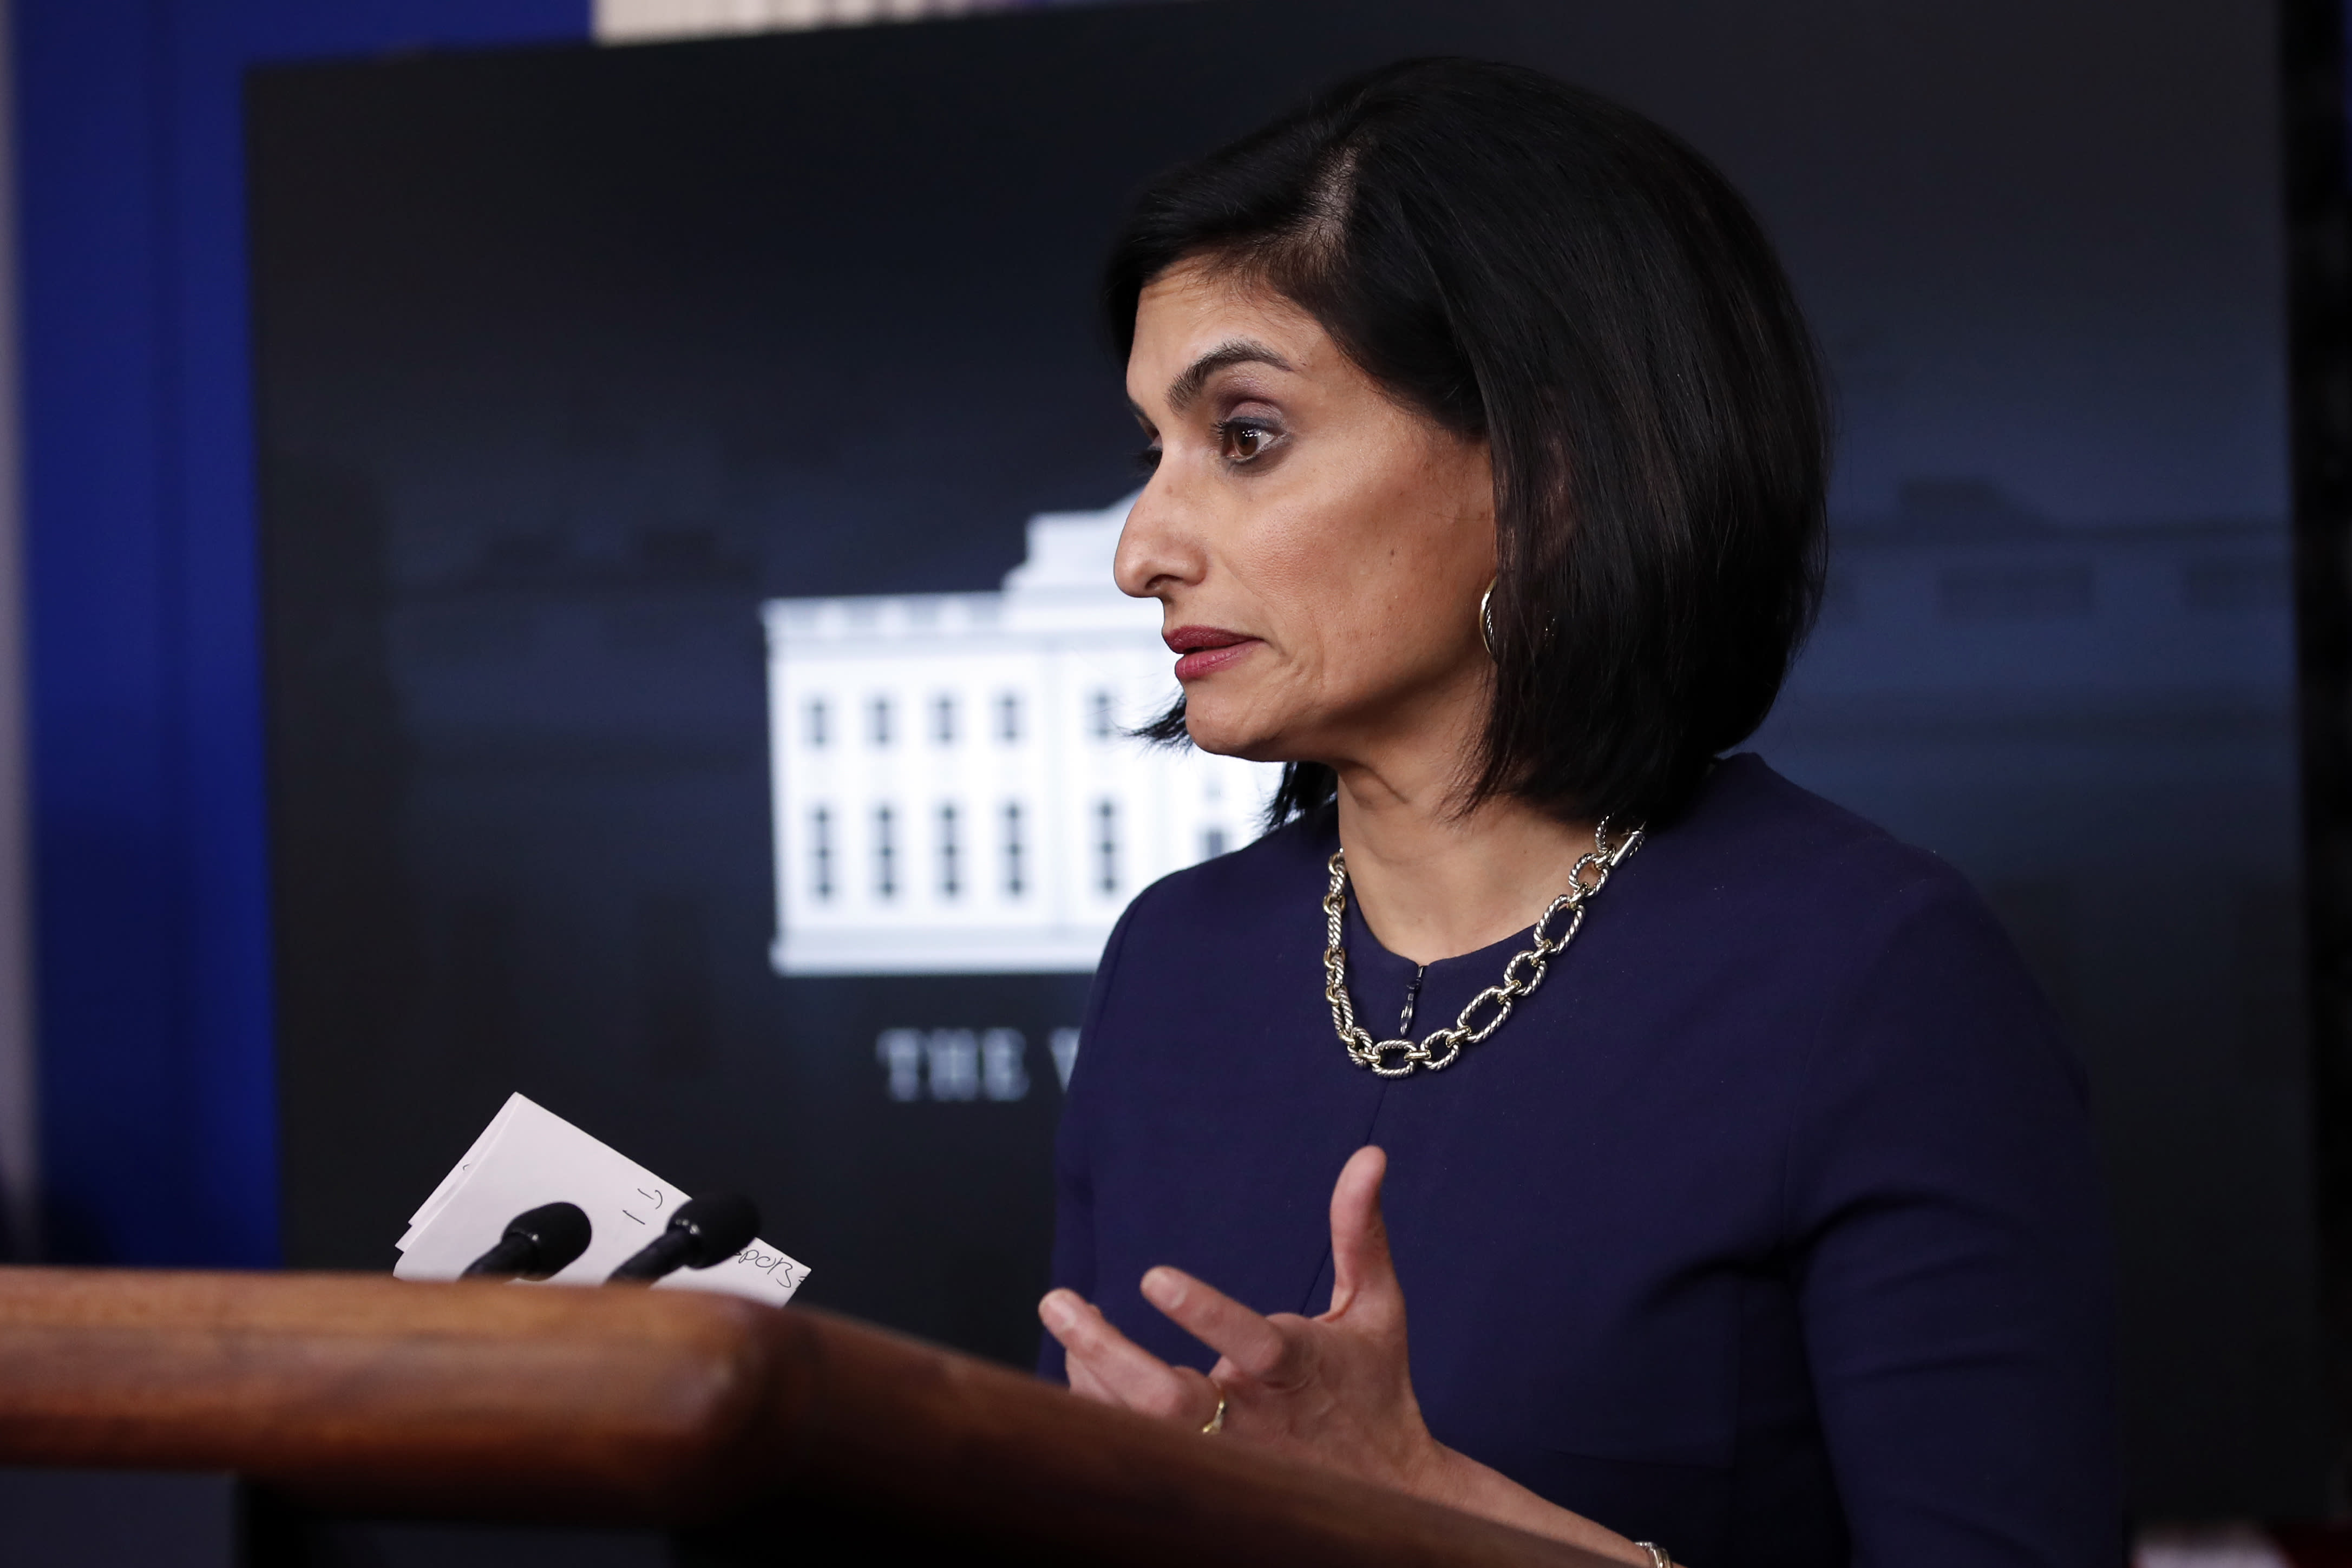 FILE - In this April 7, 2020, file photo, Seema Verma, administrator of the Centers for Medicare and Medicaid Services, speaks about the coronavirus in the James Brady Press Briefing Room of the White House in Washington. Verma failed to properly manage more than $6 million in communications and outreach contracts, giving broad authority over federal employees to a Republican media strategist she worked with before joining the Trump administration, a government watchdog said in a report to be released Thursday, July 16. (AP Photo/Alex Brandon, File)